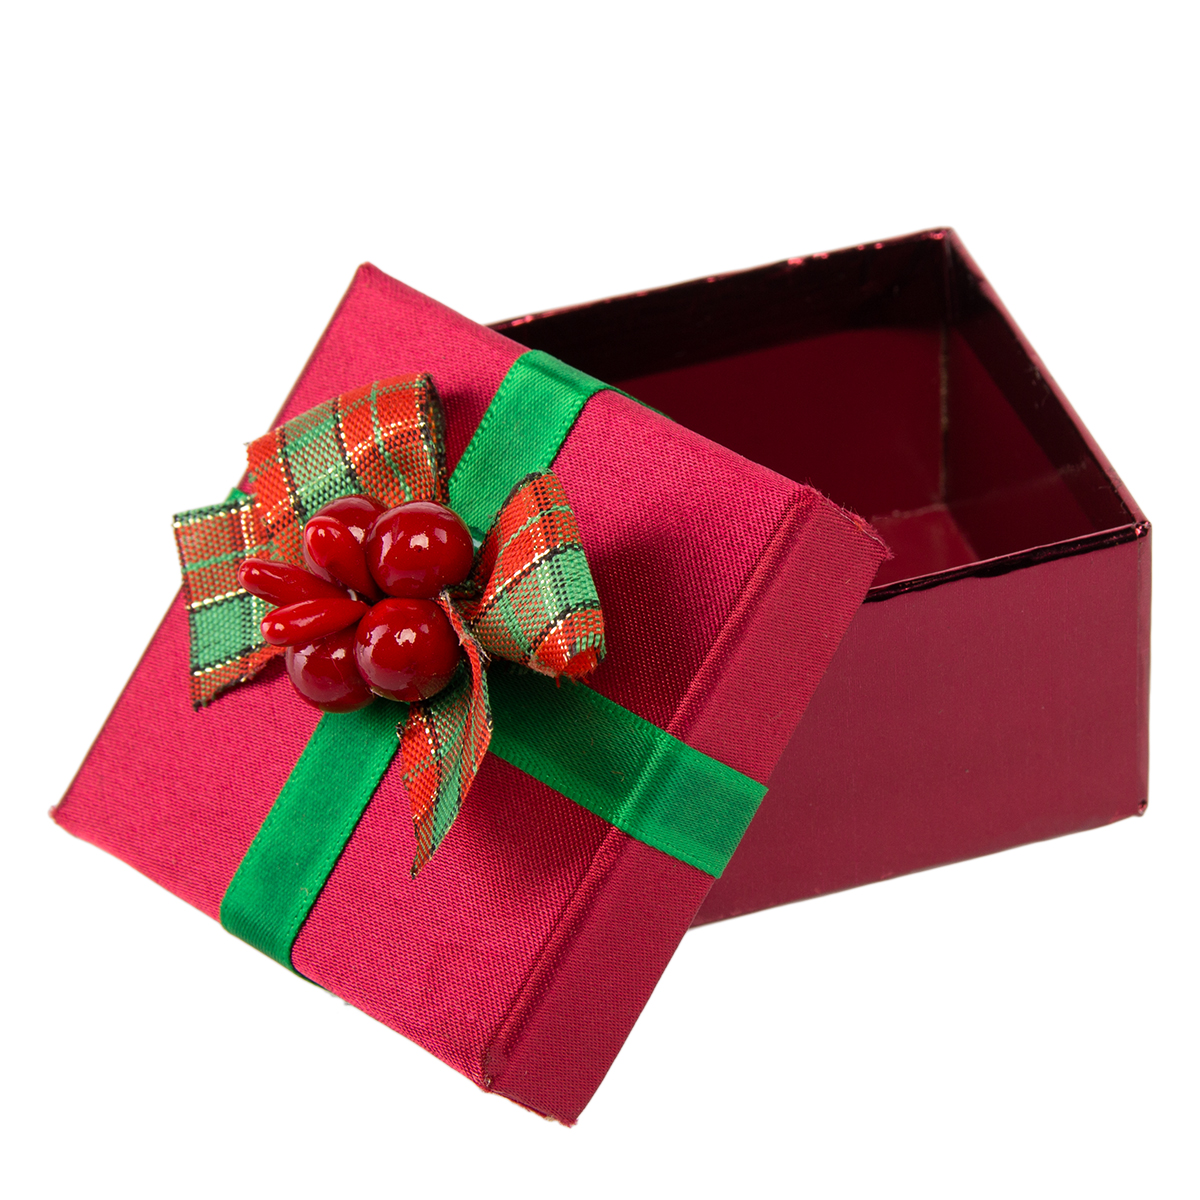 Stacked Gift Boxes Ornament Set Trim your tree, mantle, or ... |Tiny Christmas Boxes